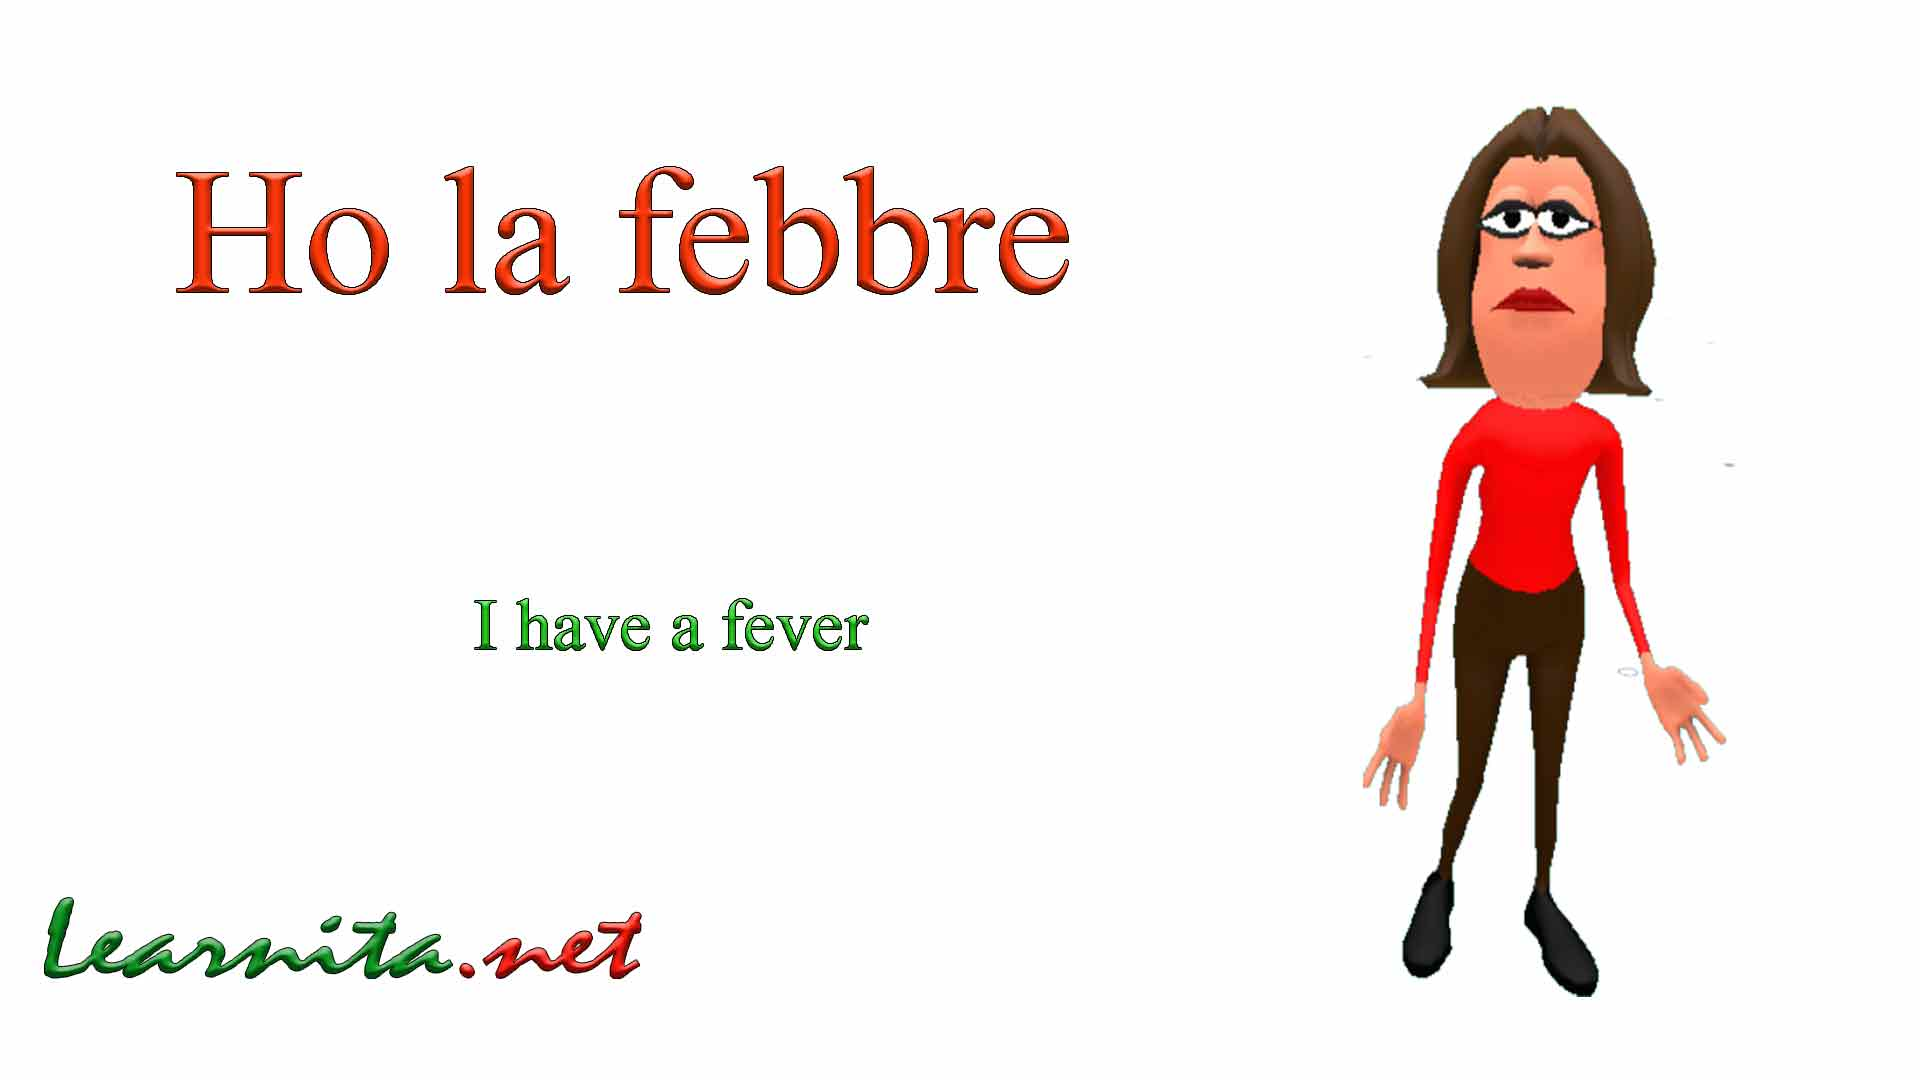 Have a fever in italian